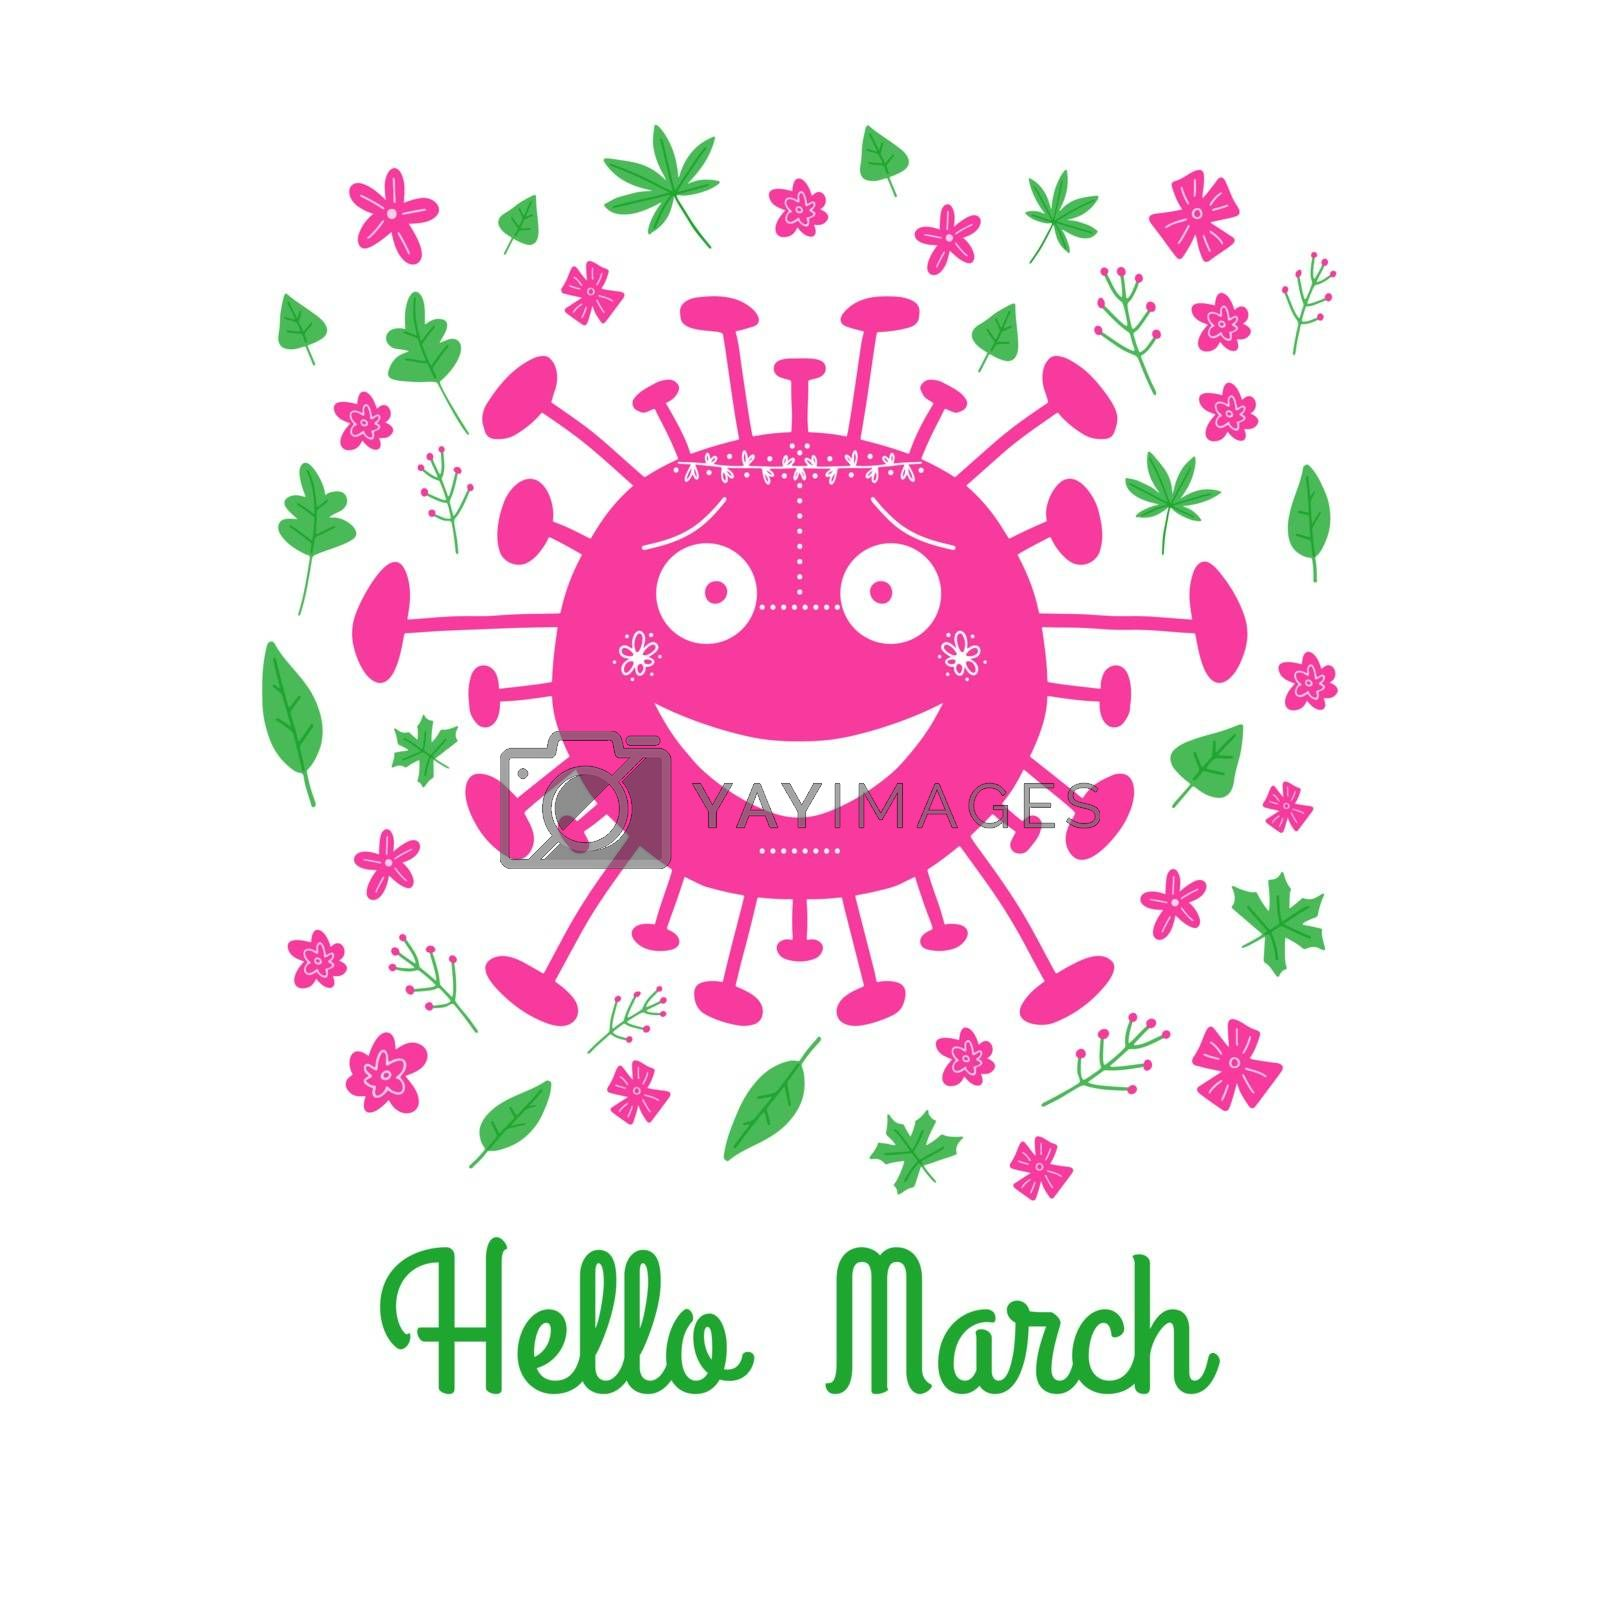 Hello March. Pink cartoon coronavirus bacteria with green leaves and spring flowers. Isolated on white background. Vector stock illustration.